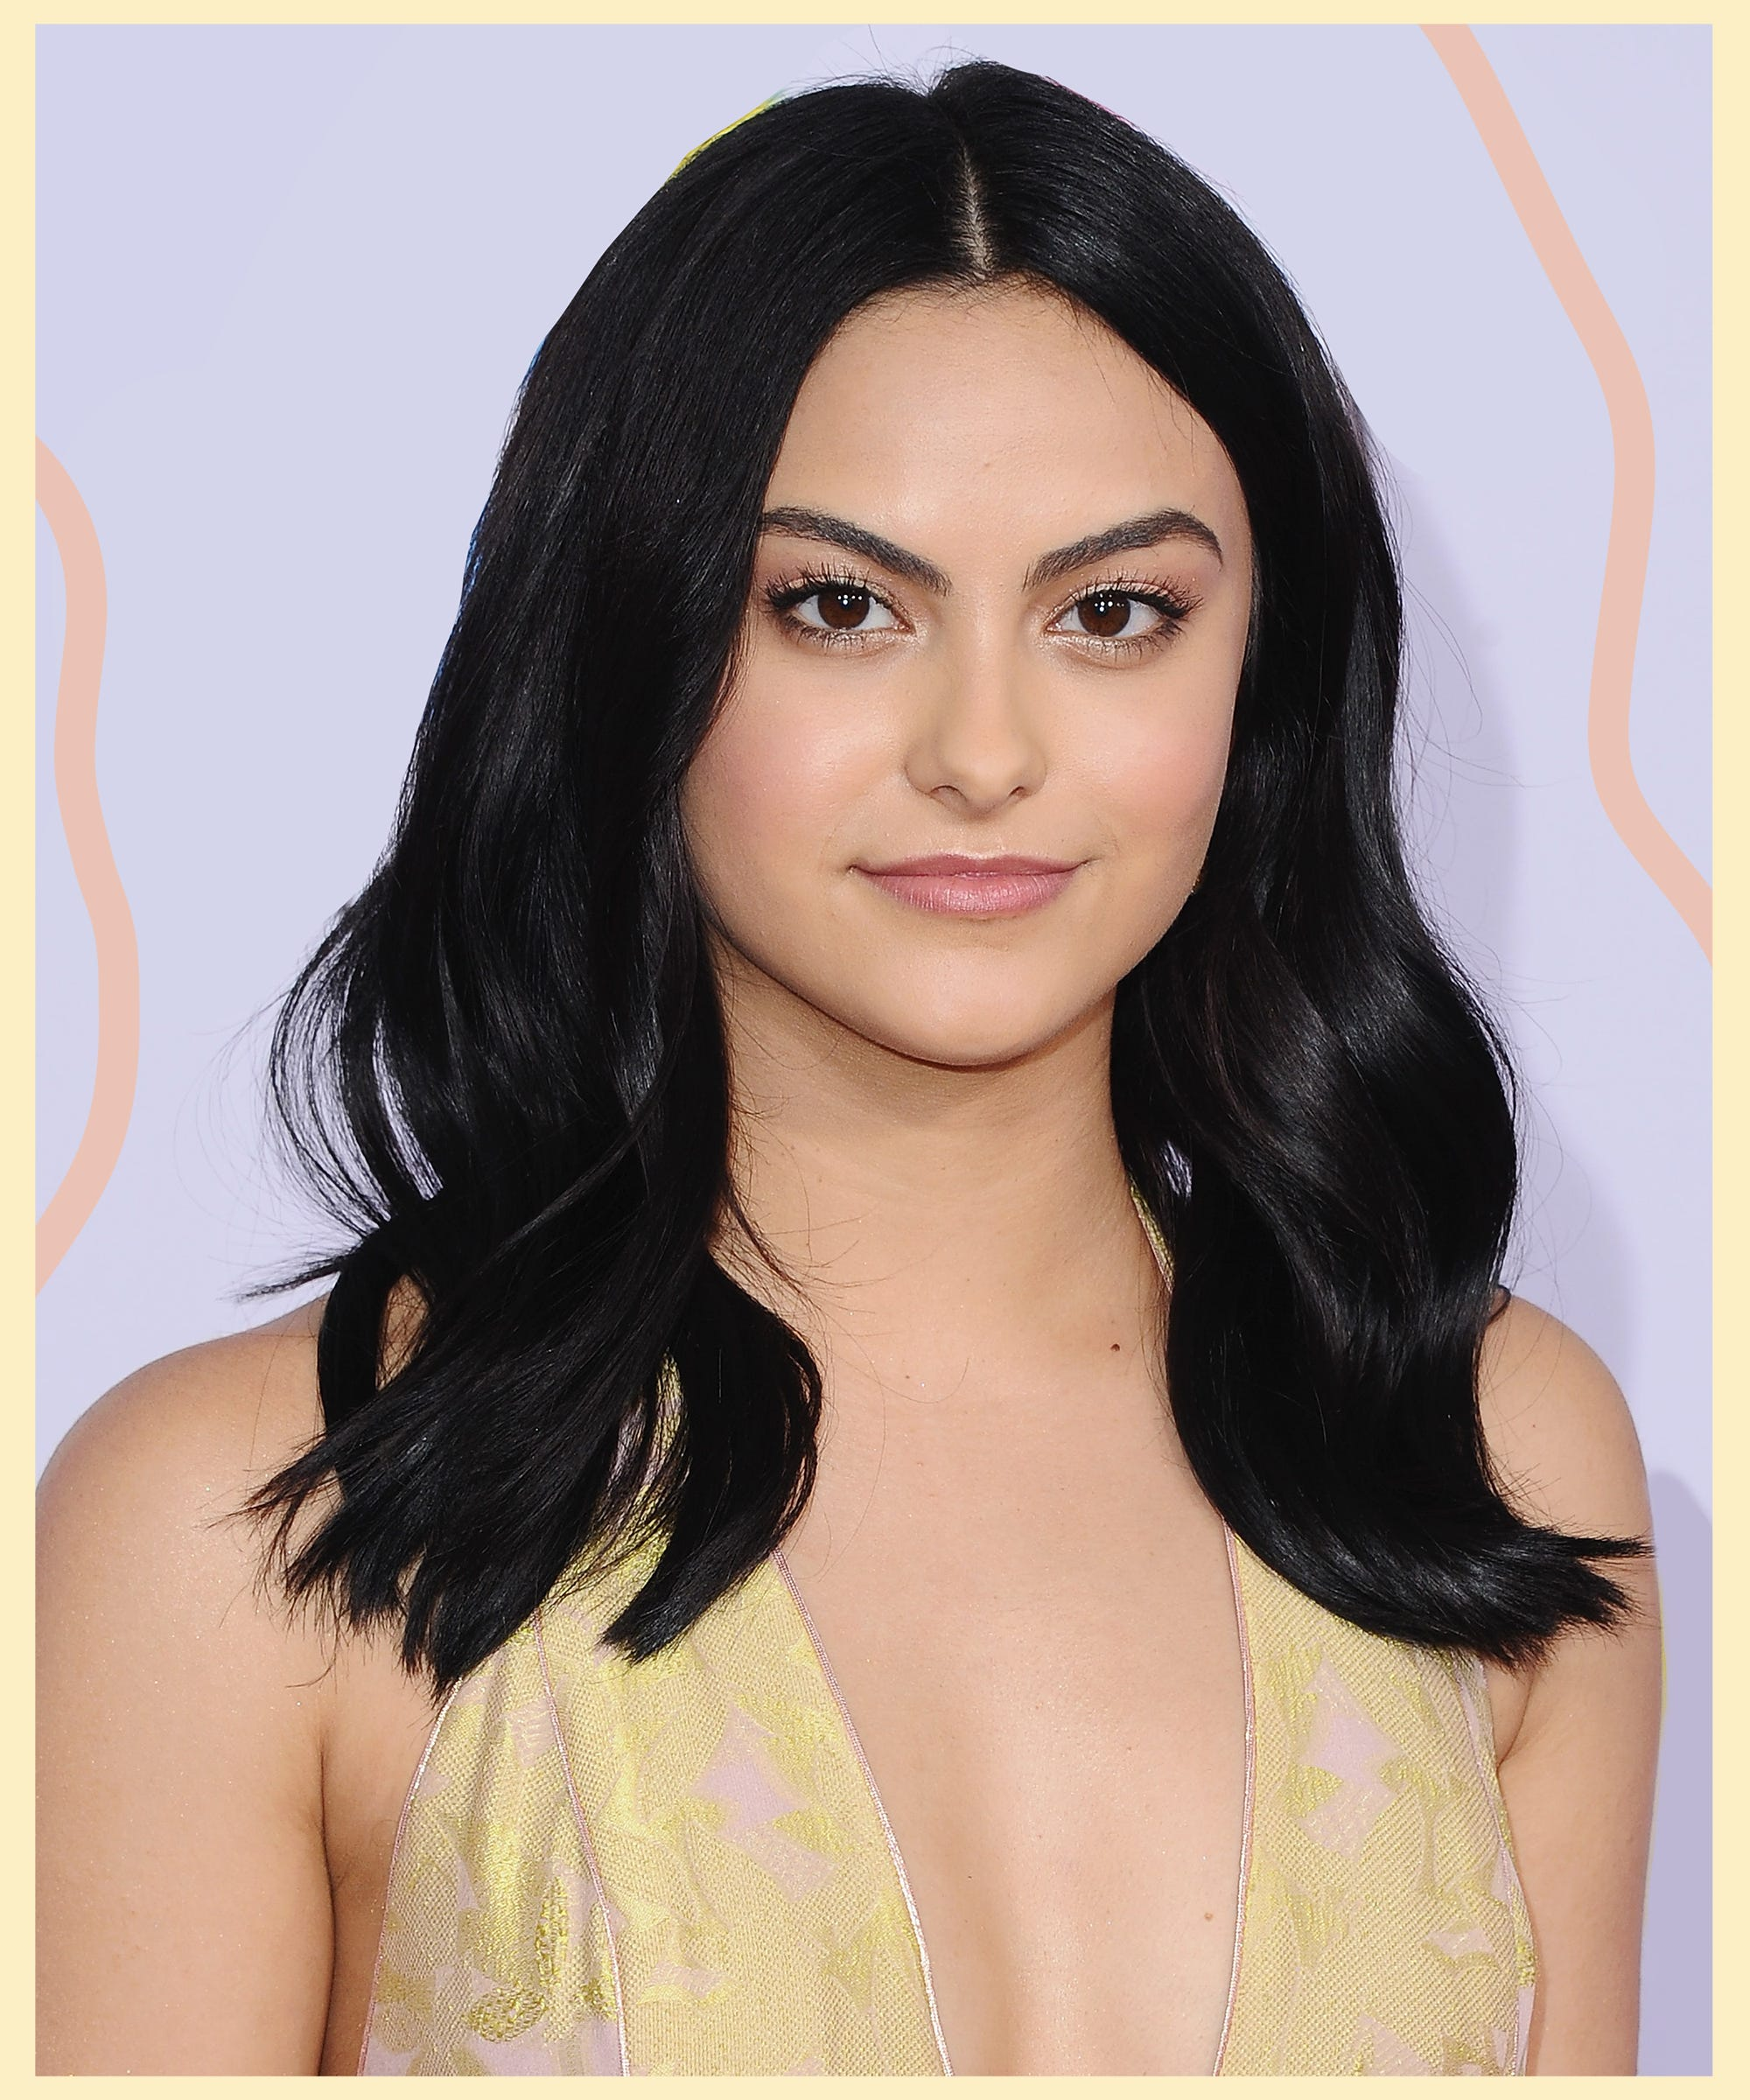 Camila Mendes Reveals Struggle With Bulimia In Shape